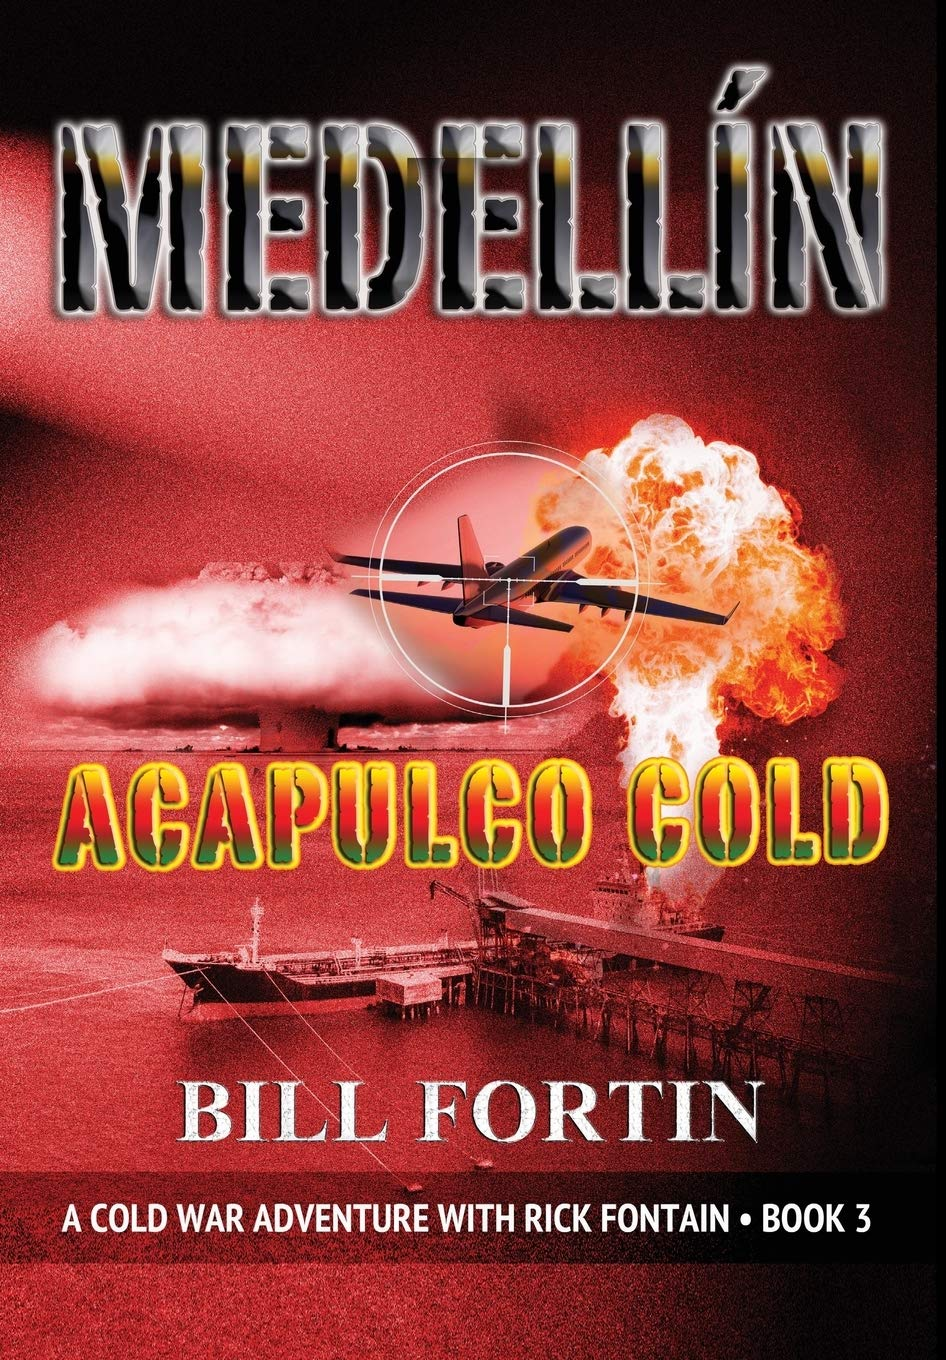 Amazon.com: Medellin Acapulco Cold: A Cold War Adventure ...